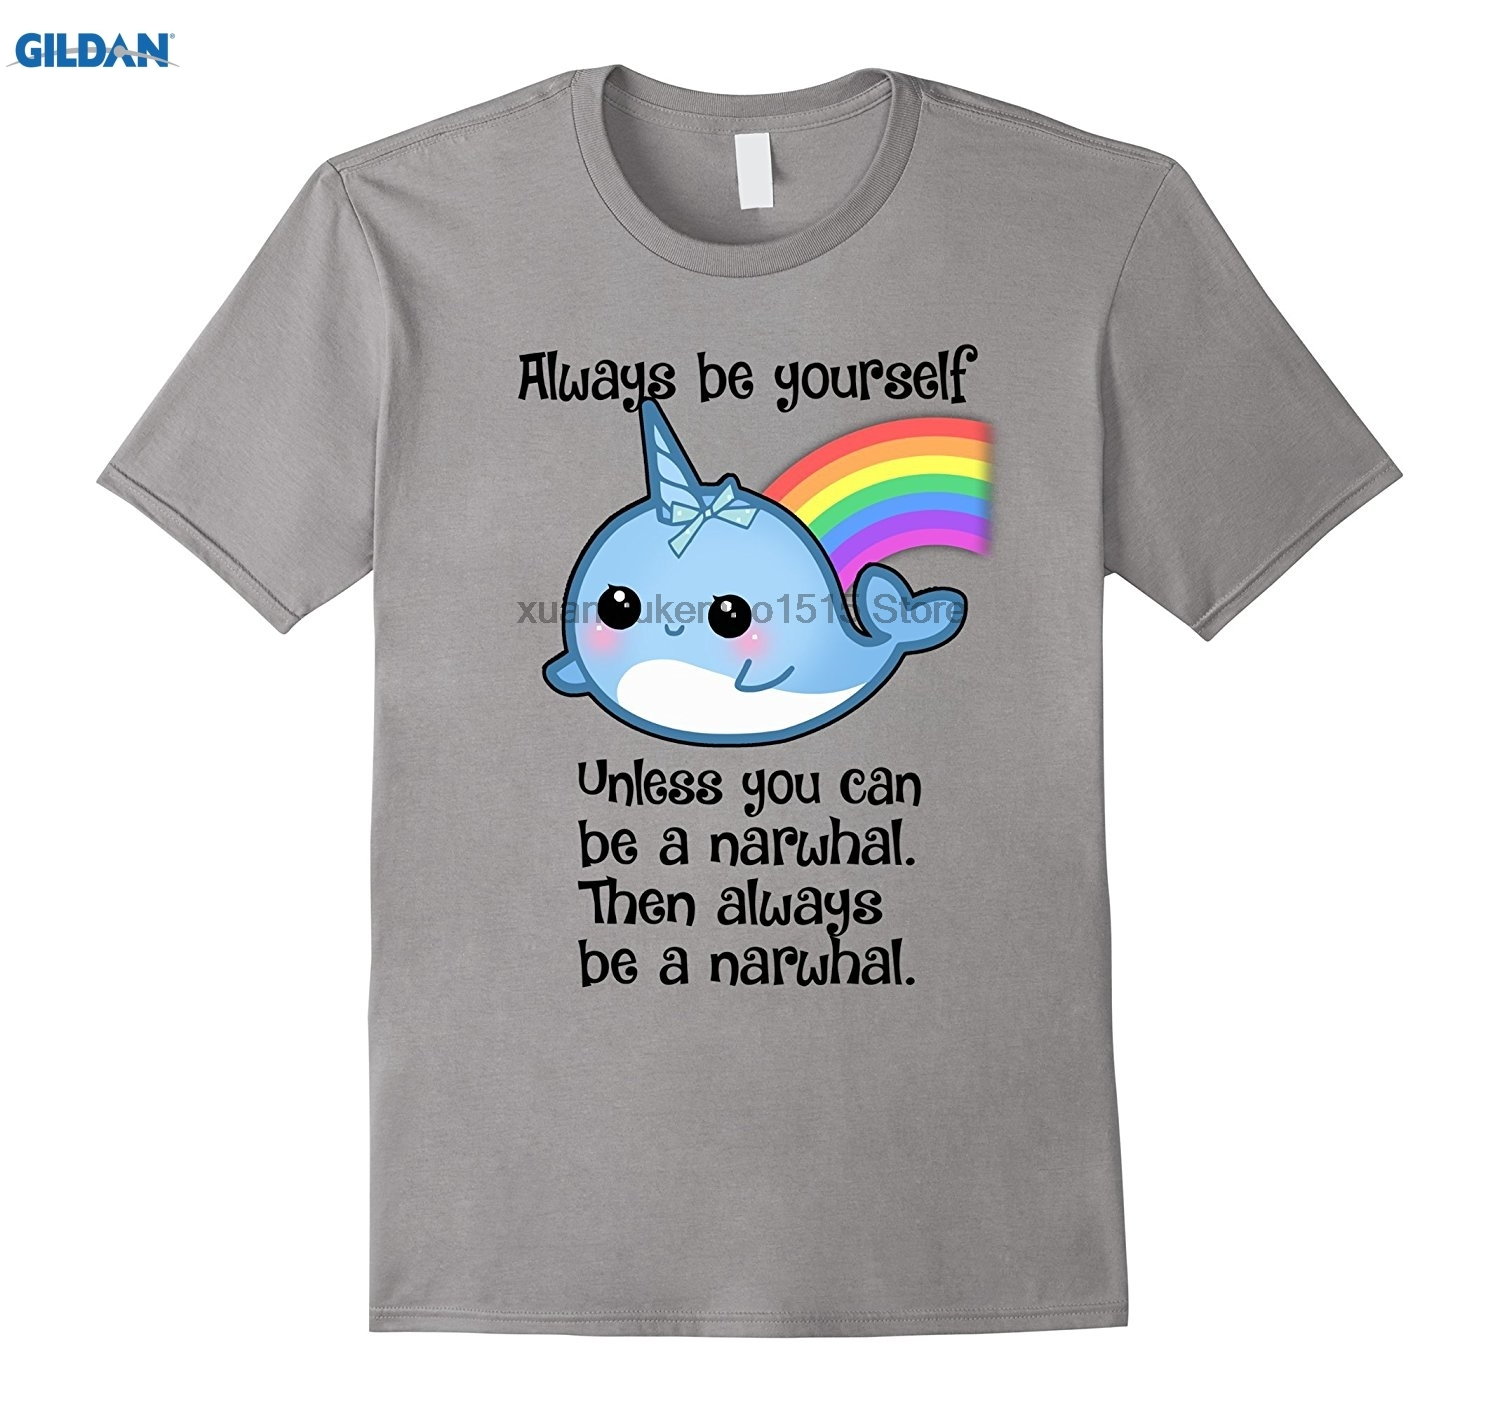 GILDAN 100% Cotton O-neck printed T-shirt The Be A Narwhal Shirt